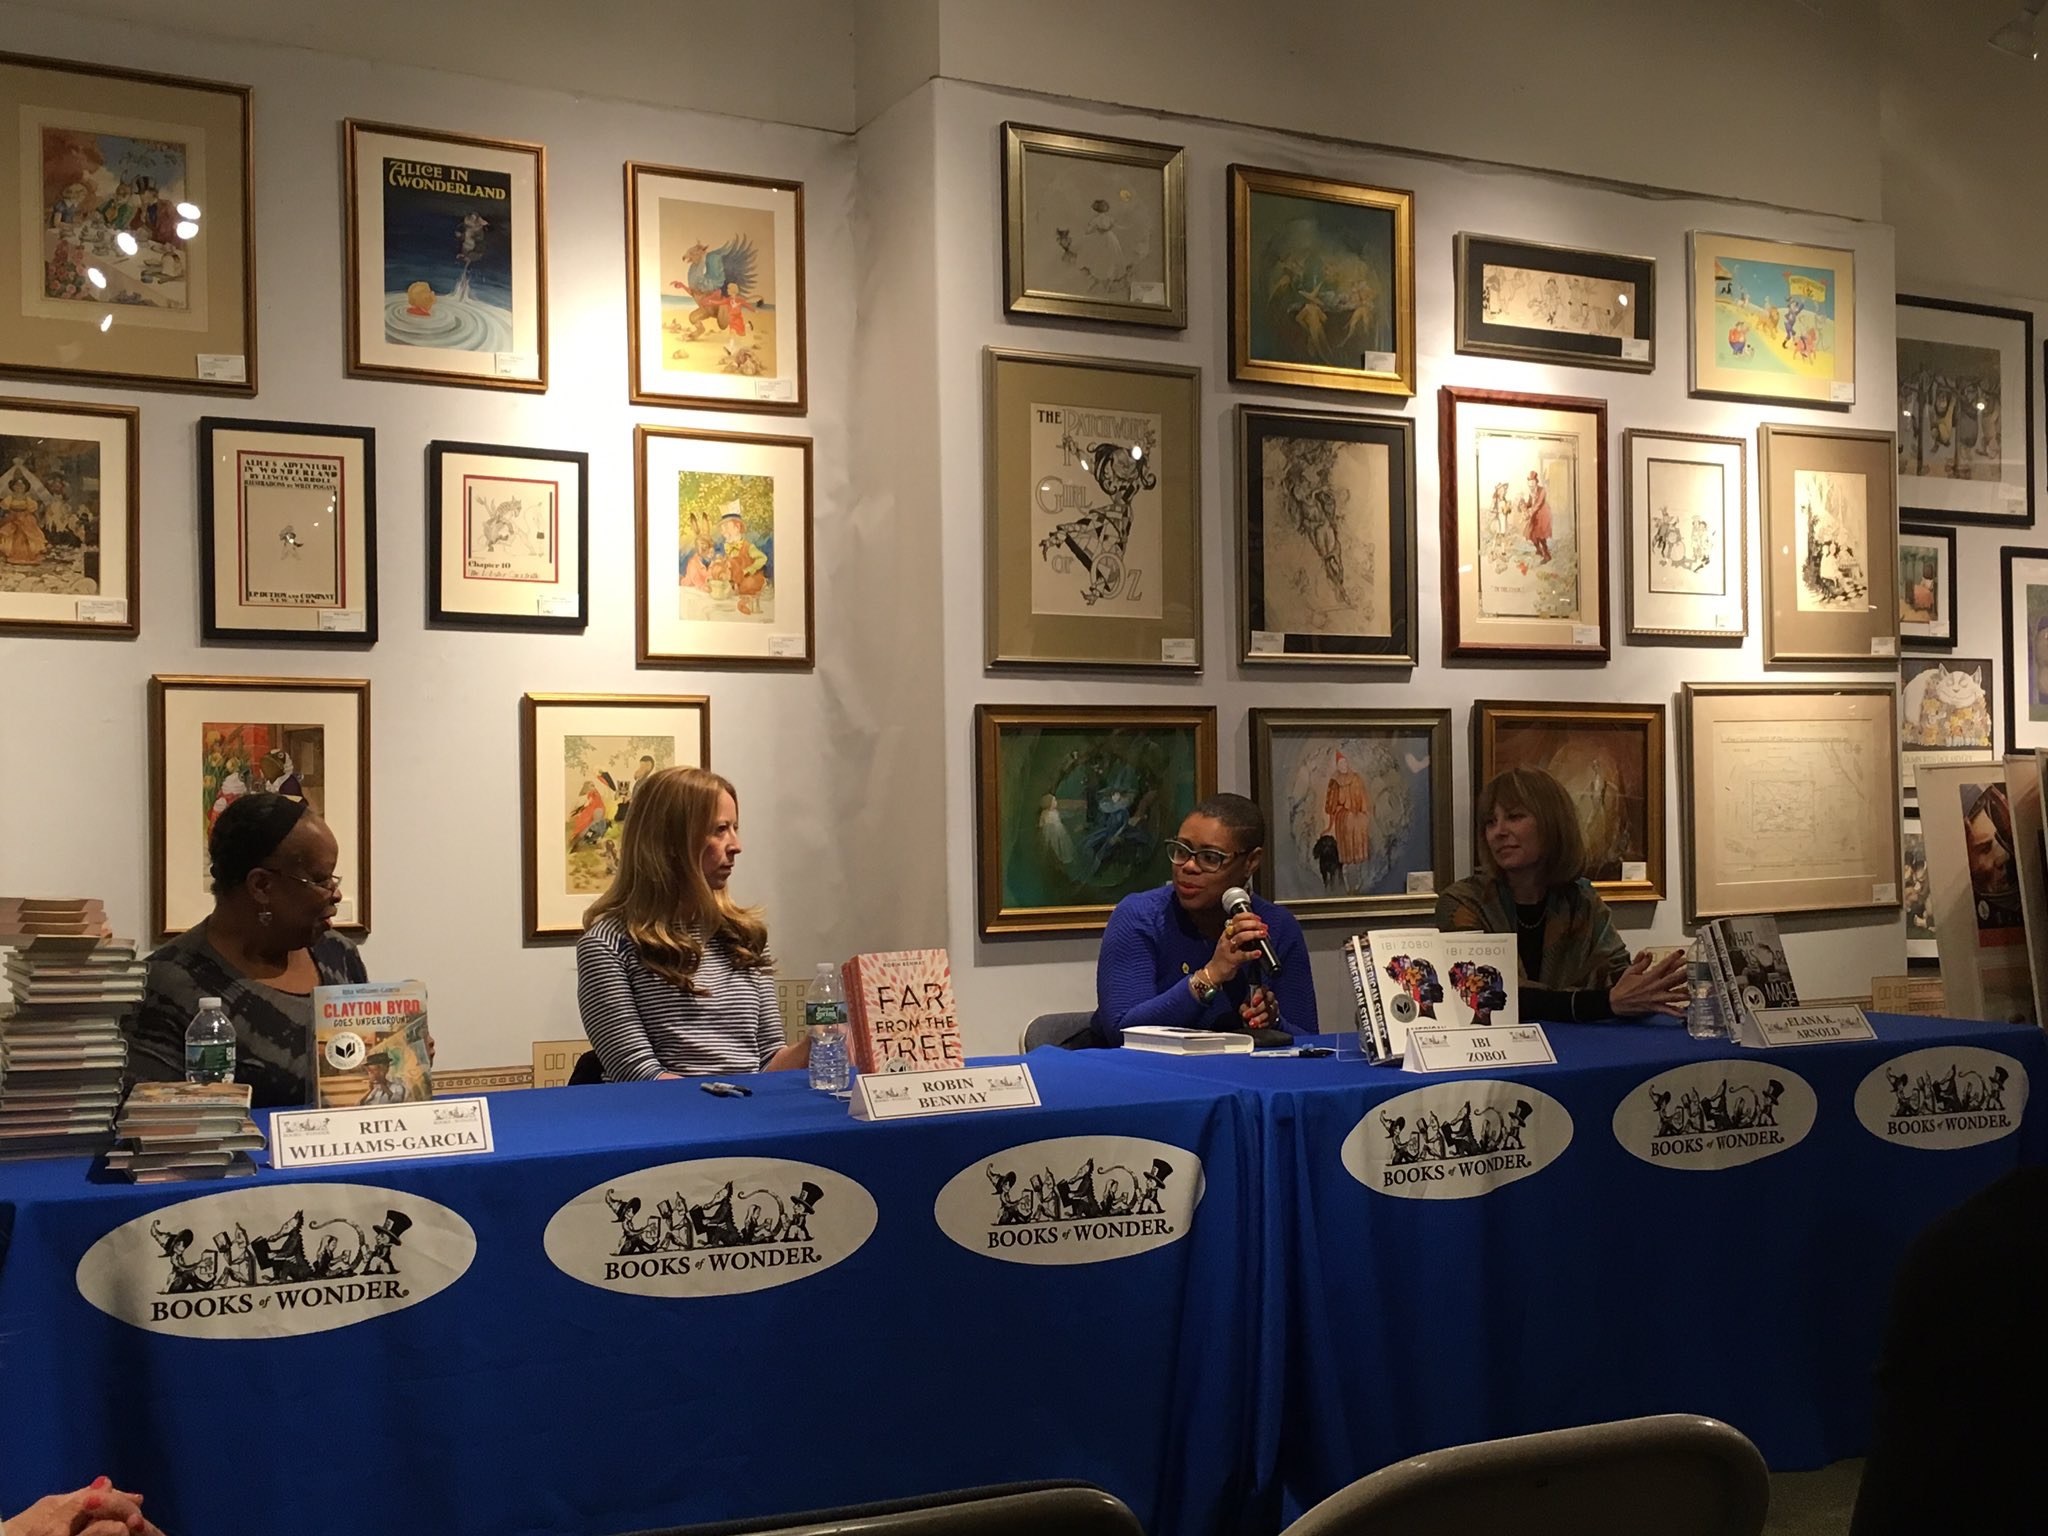 Signing with Rita, Ibi, and Elana at Books of Wonder! (Erika was busy being awesome at Mashable, so she couldn't make it.)